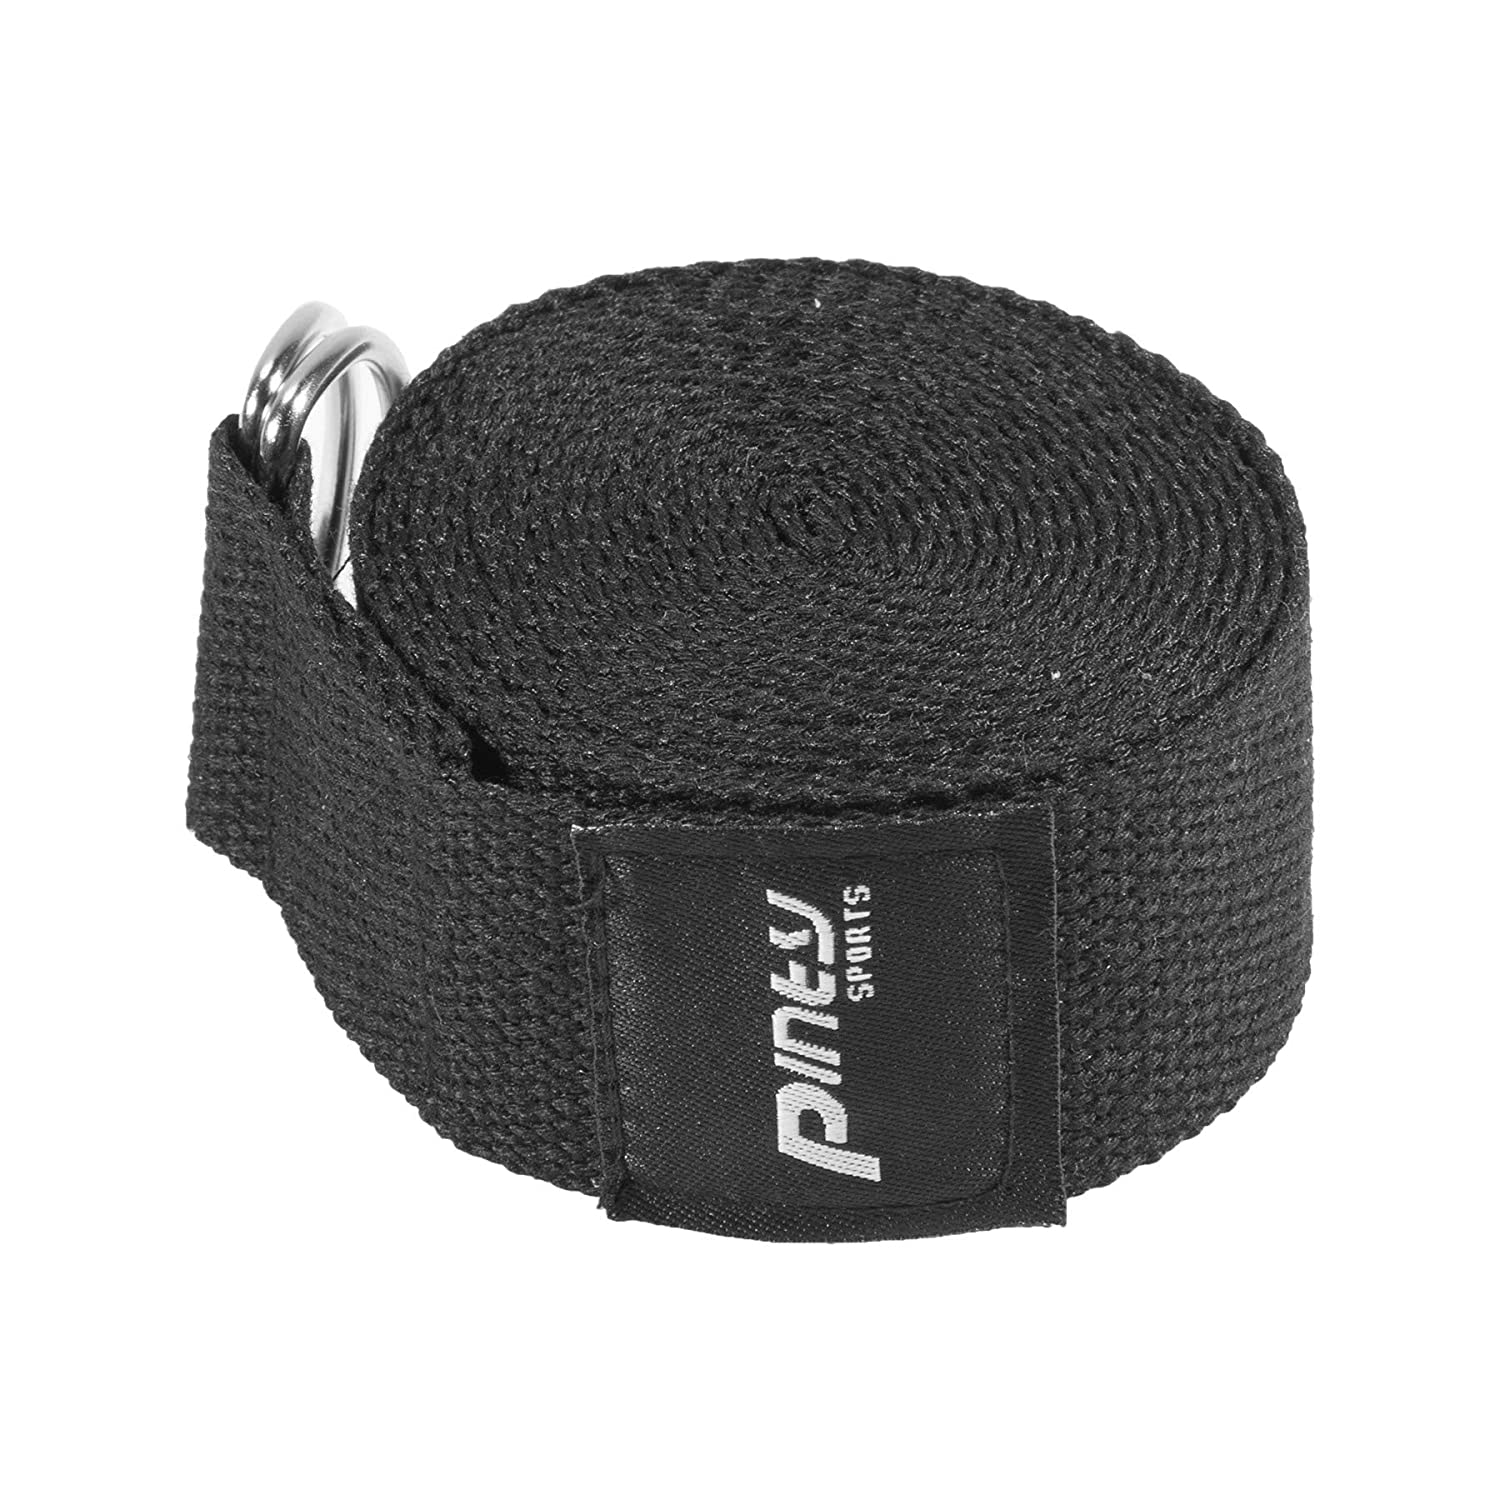 Pinty Yoga Strap 8ft/10ft – Durable Cotton Exercise Straps w/Adjustable D-Ring Buckle for Fitness, Stretching, Yoga and Flexibility